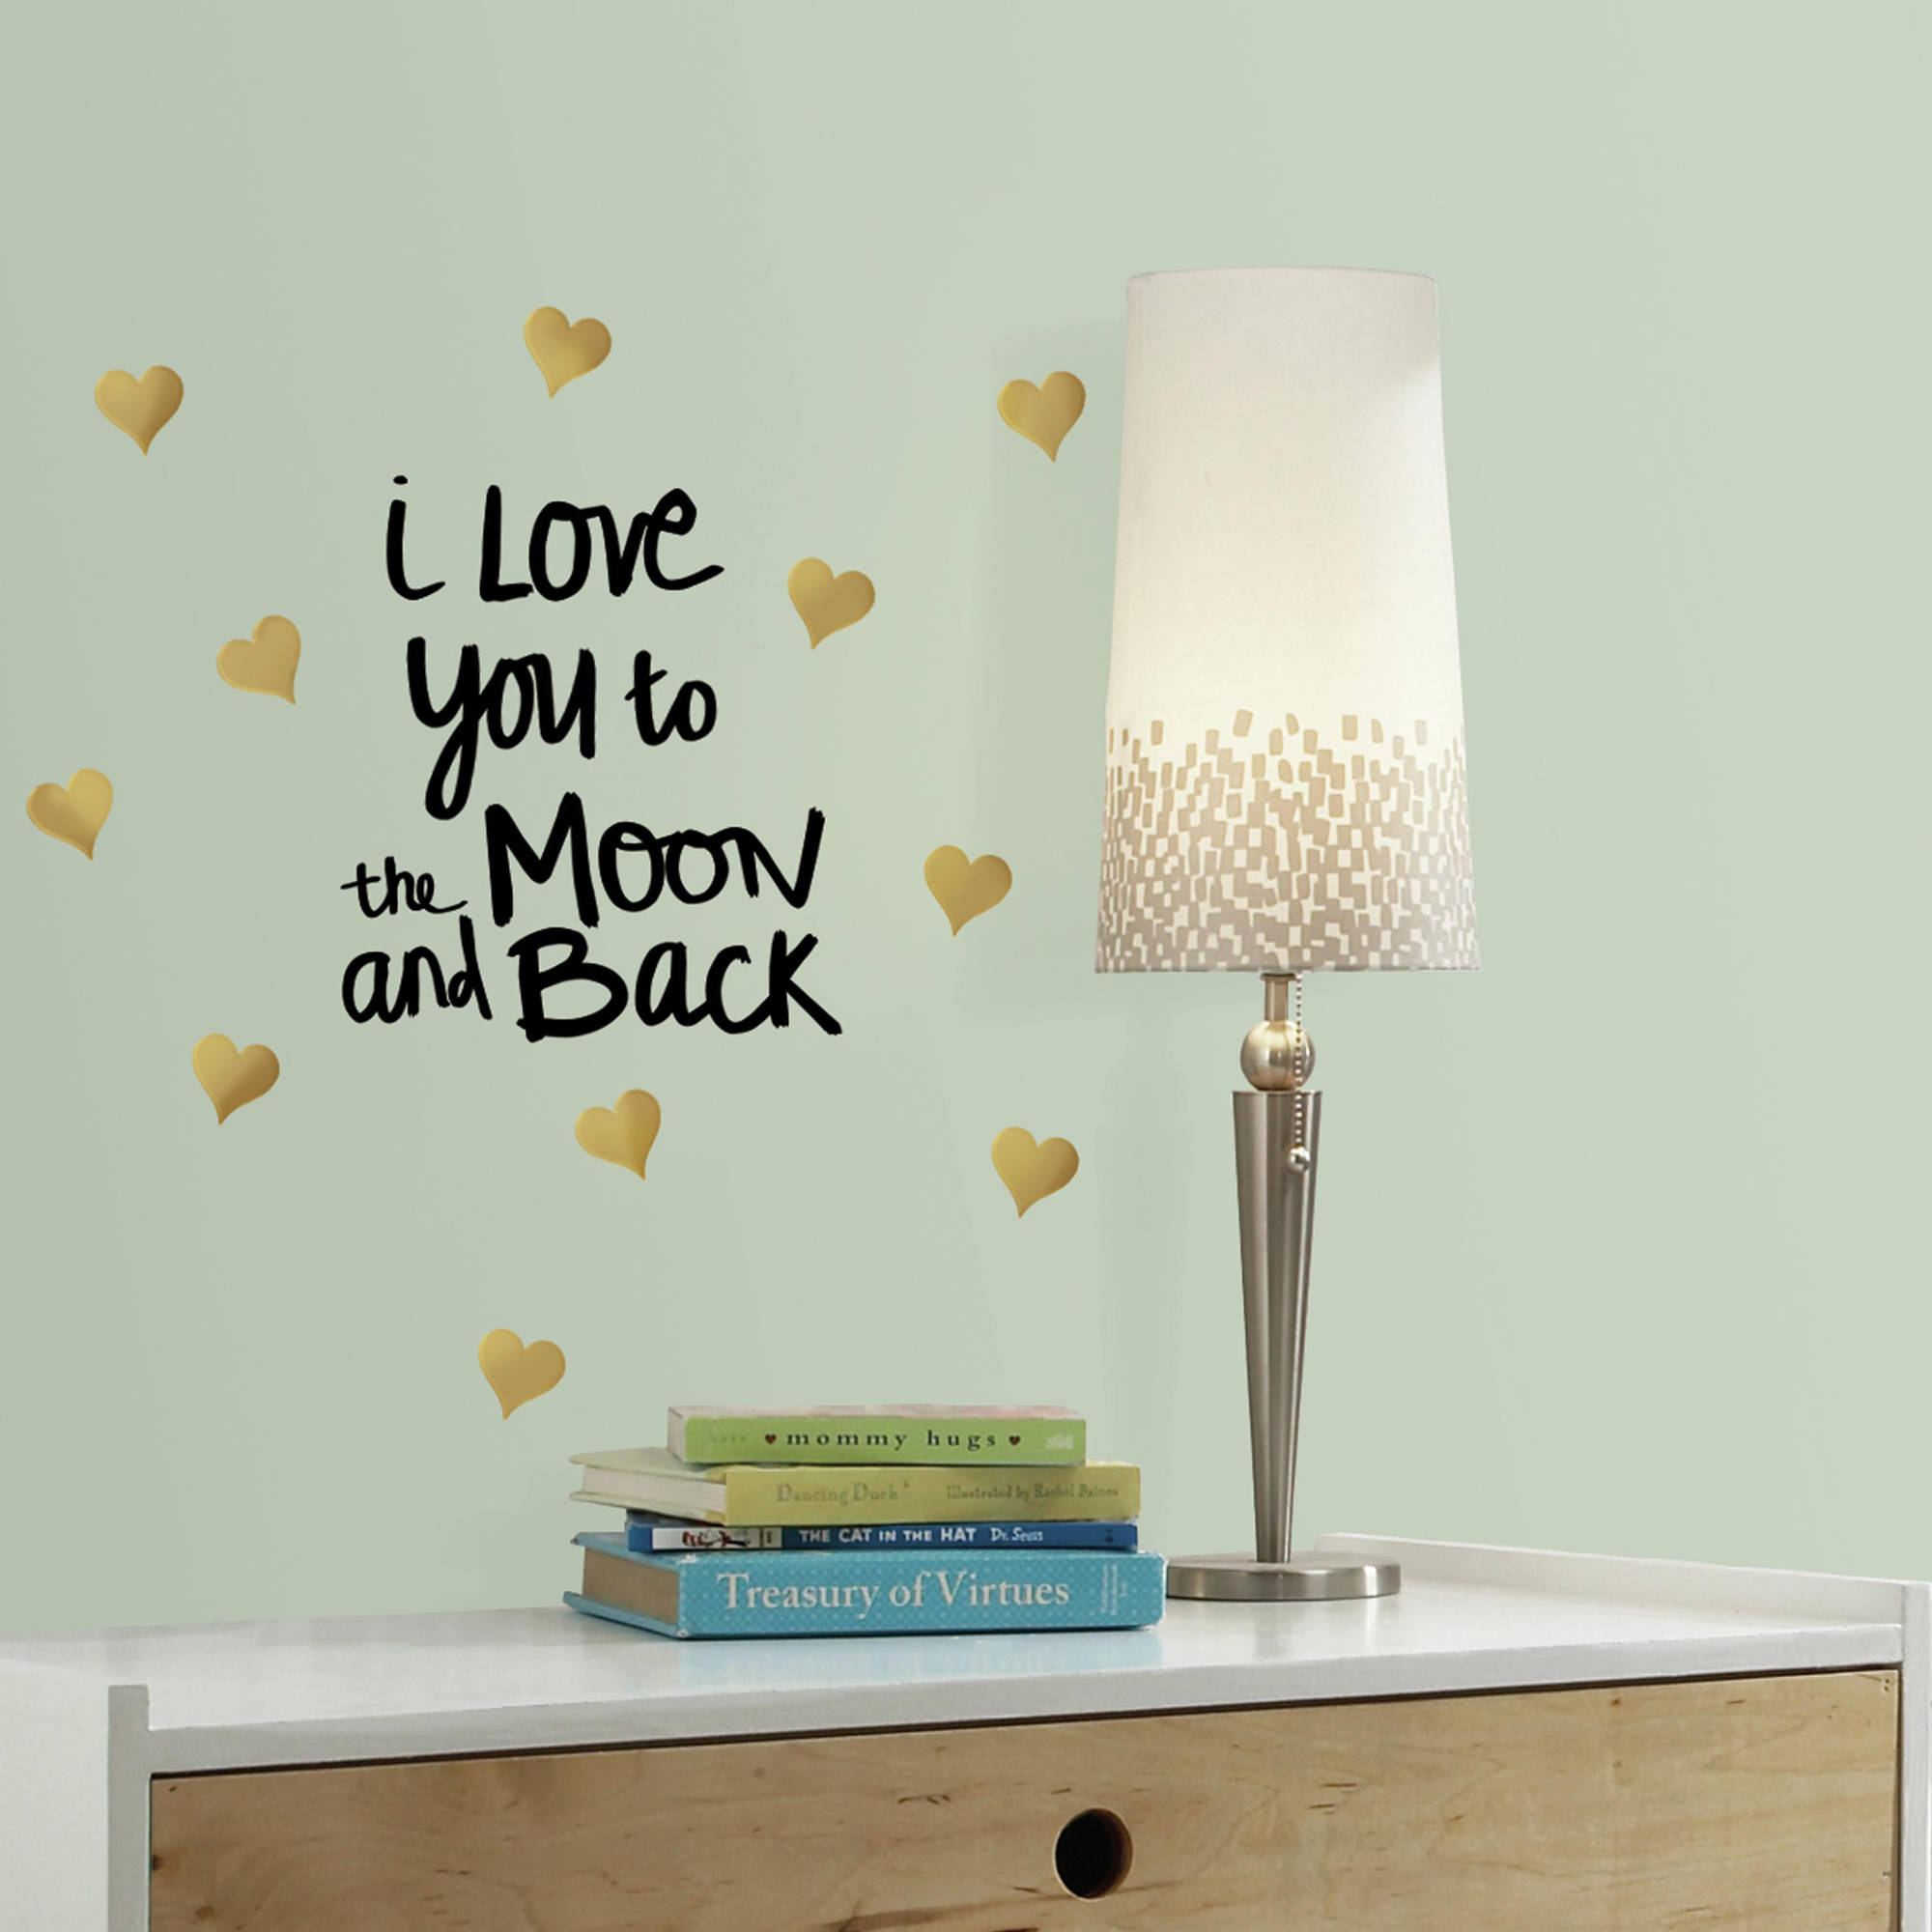 Roommates Love You To The Moon Quote Peel and Stick Wall Decals